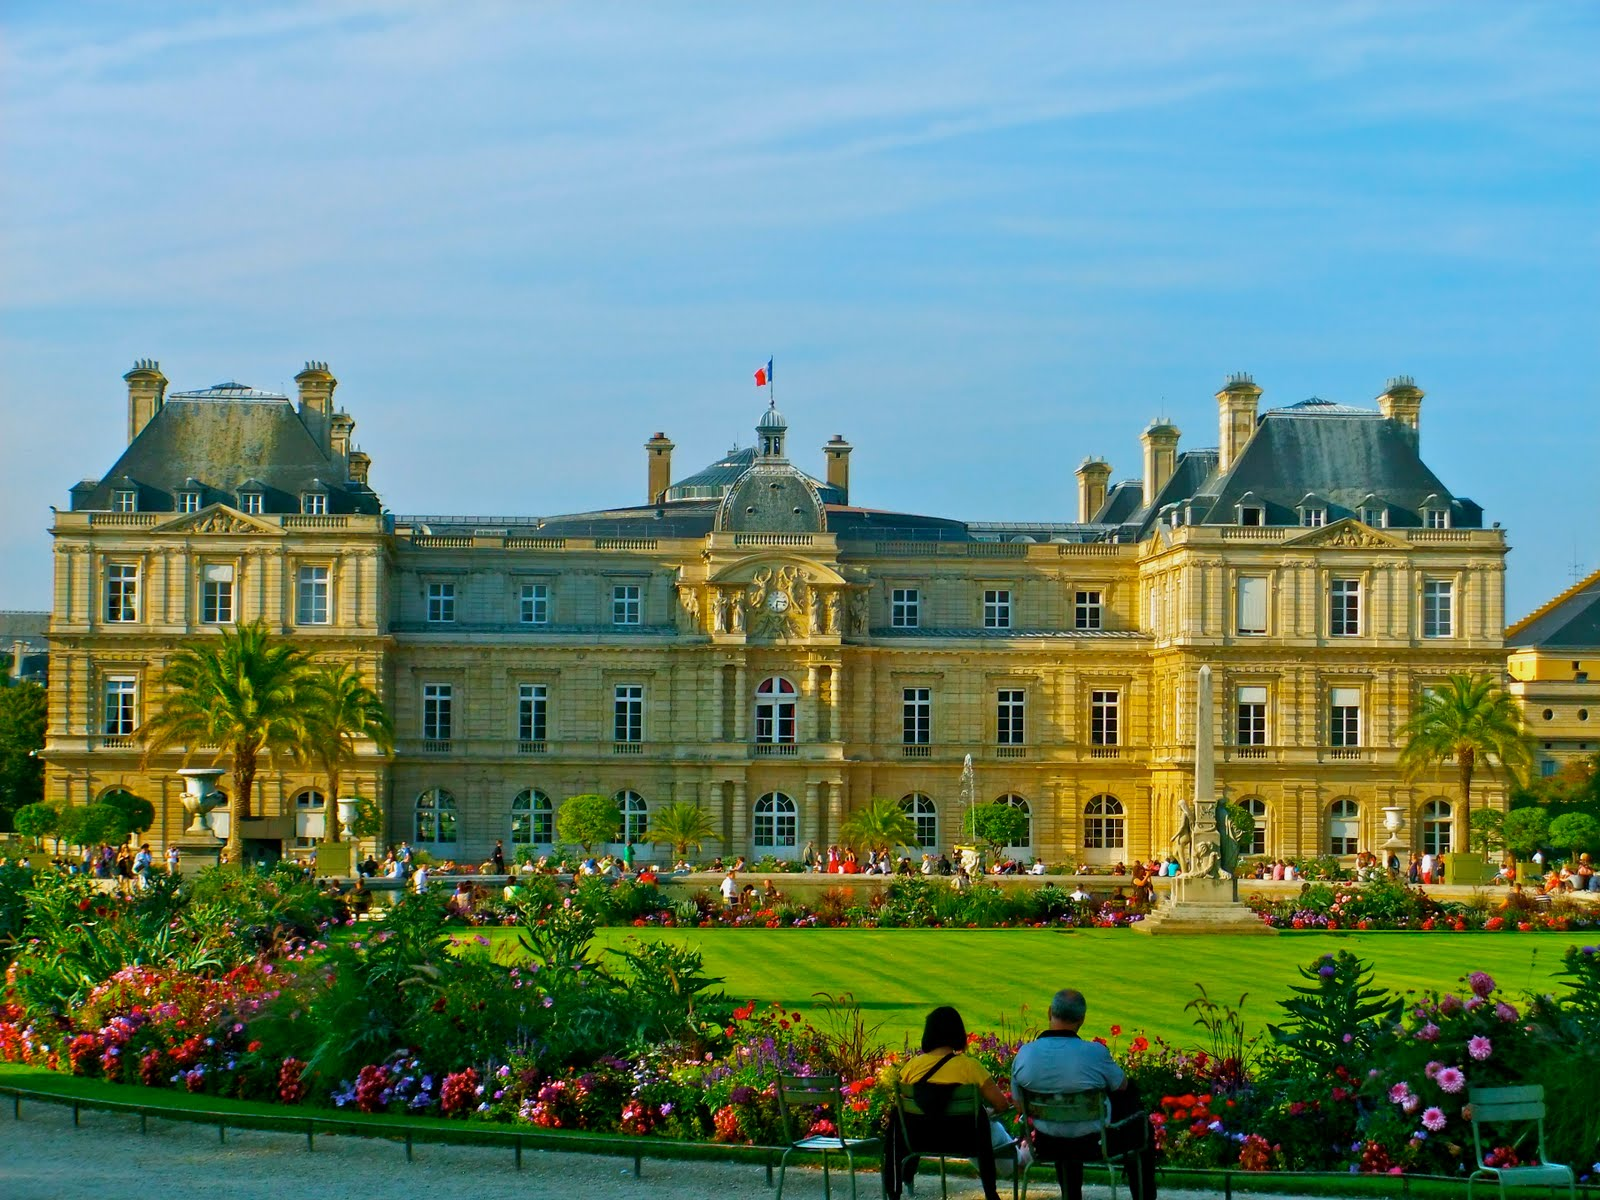 25 best places to visit in paris for an extravagant vacation - Jardin de luxembourg hours ...